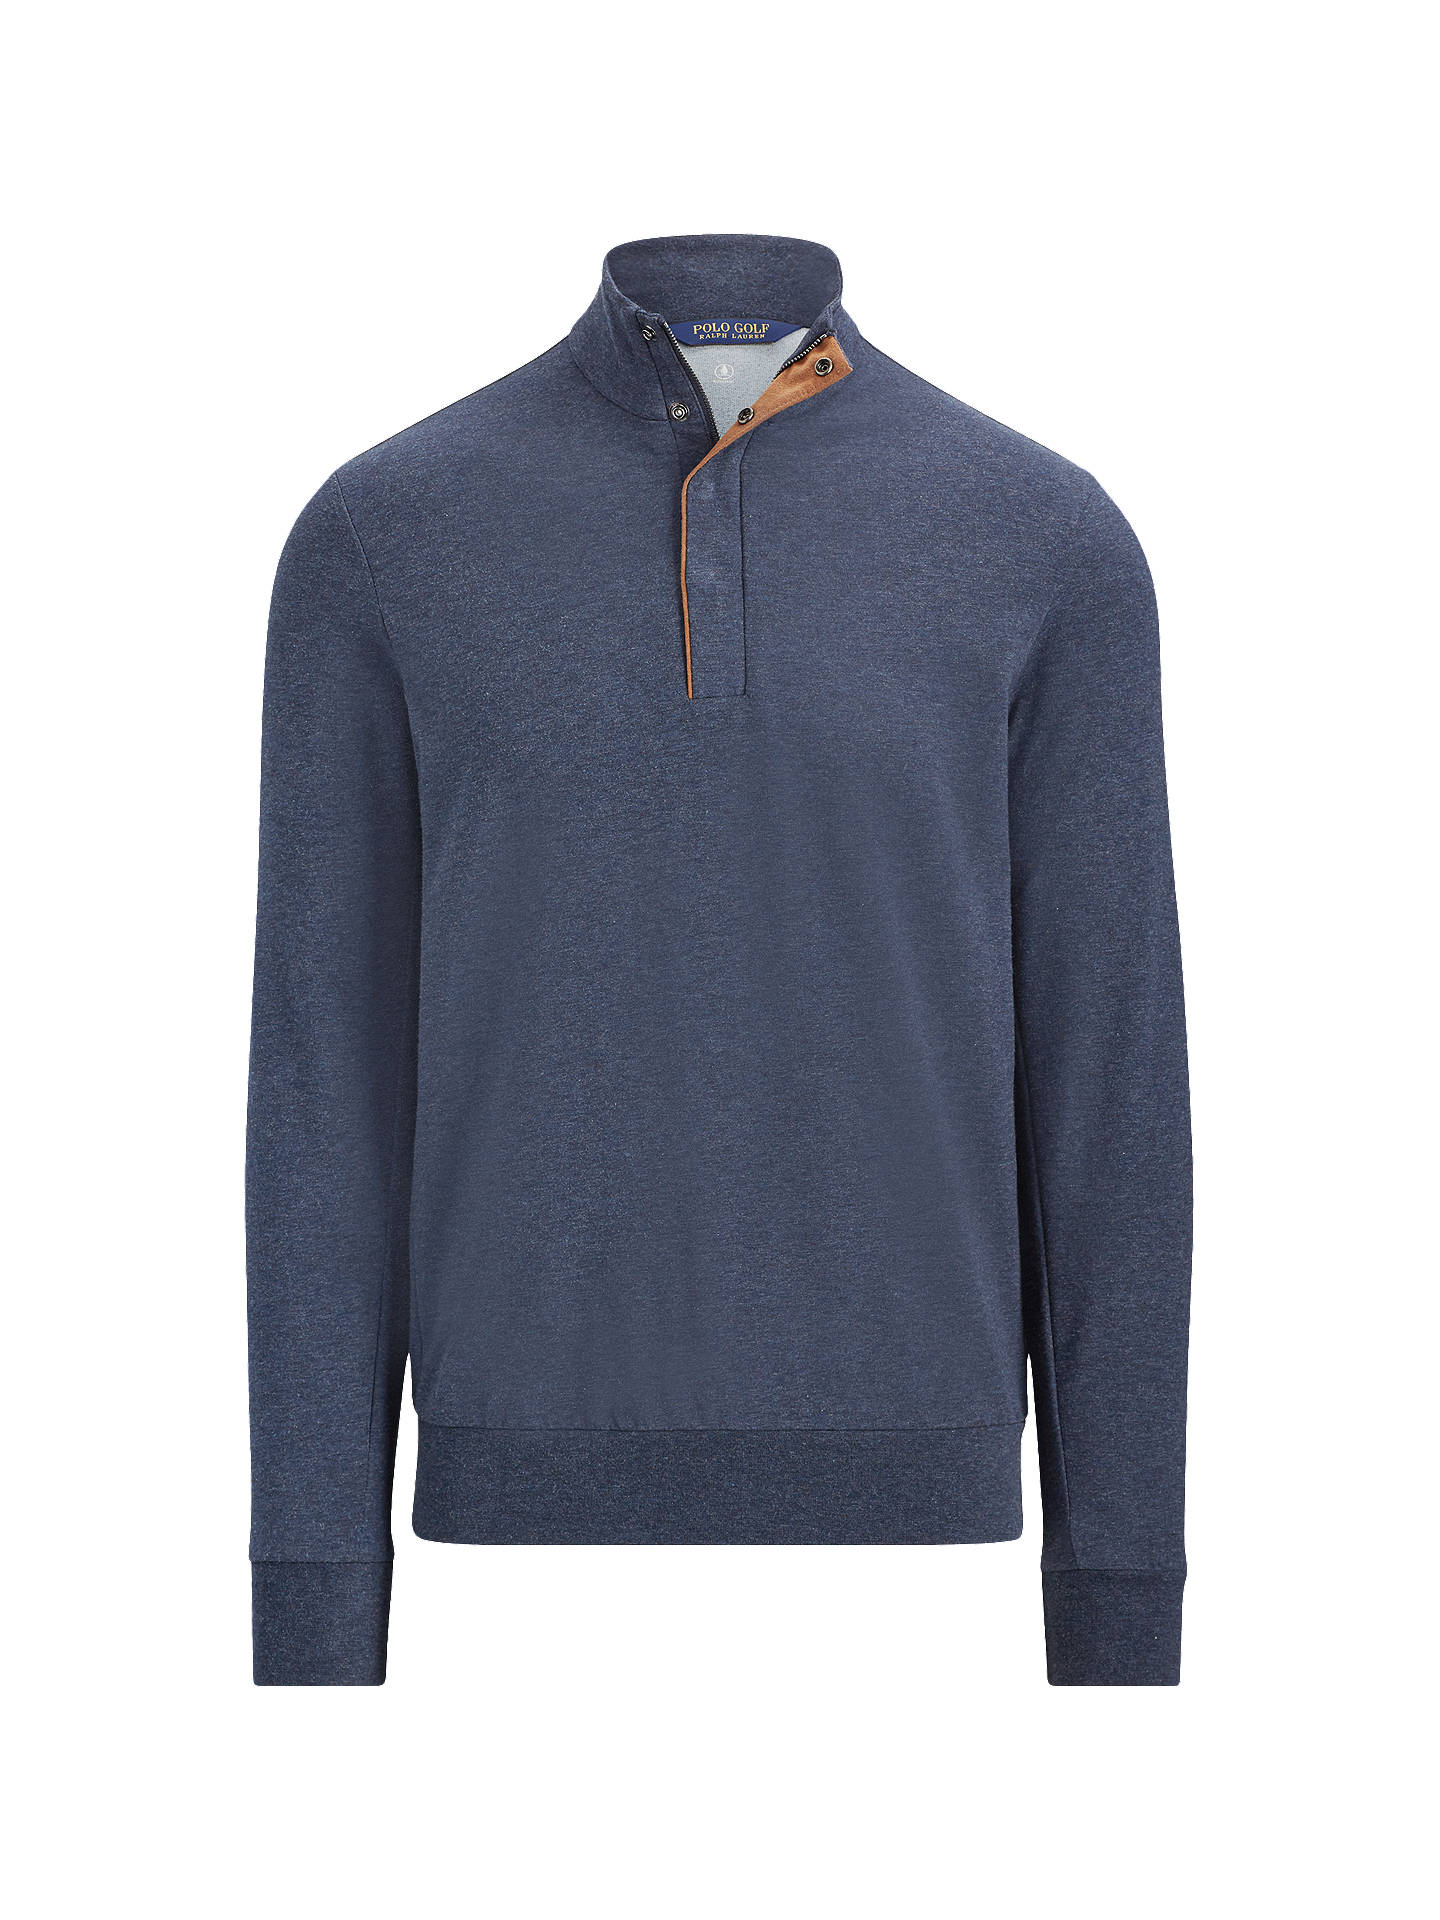 Buy Polo Ralph Lauren Long Sleeve Half Zip Jumper, Winter Navy Heather, M Online at johnlewis.com